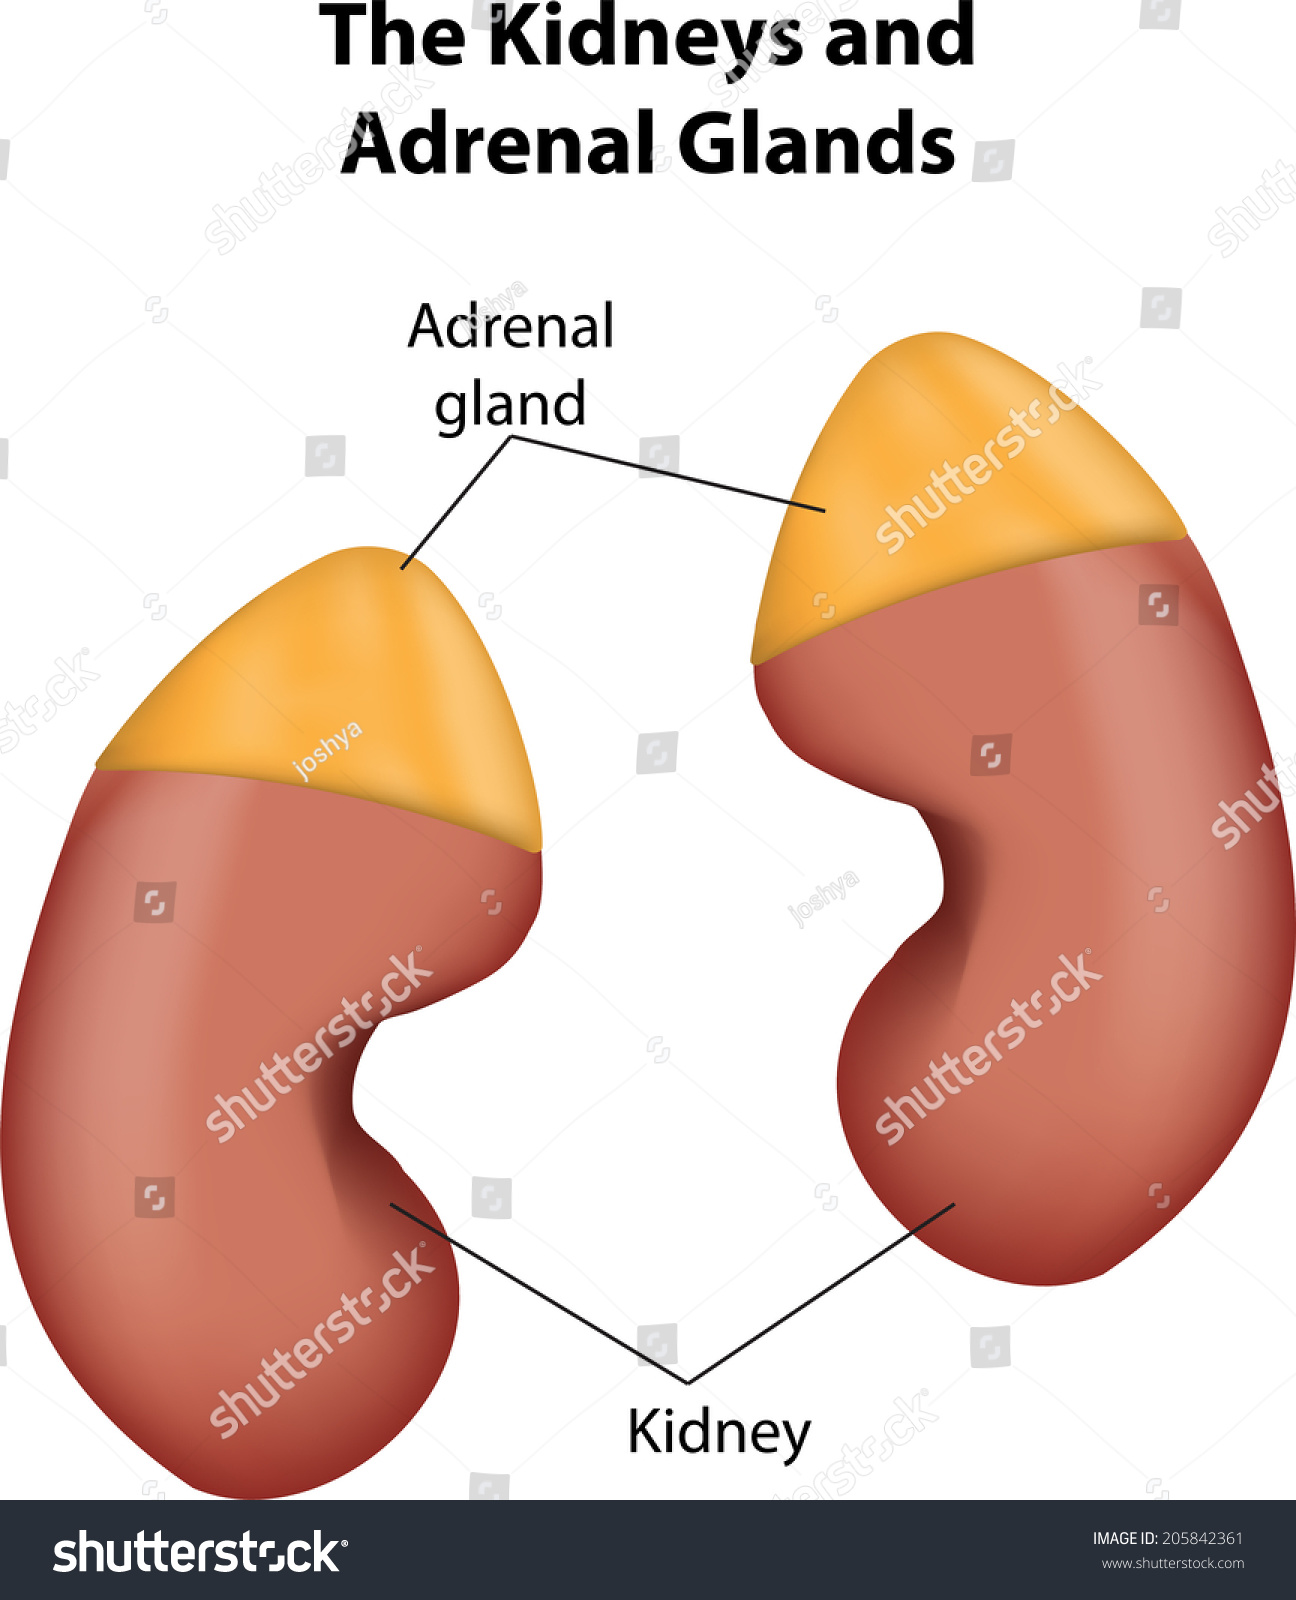 Kidneys And Adrenal Glands Labeled Diagram Stock Photo